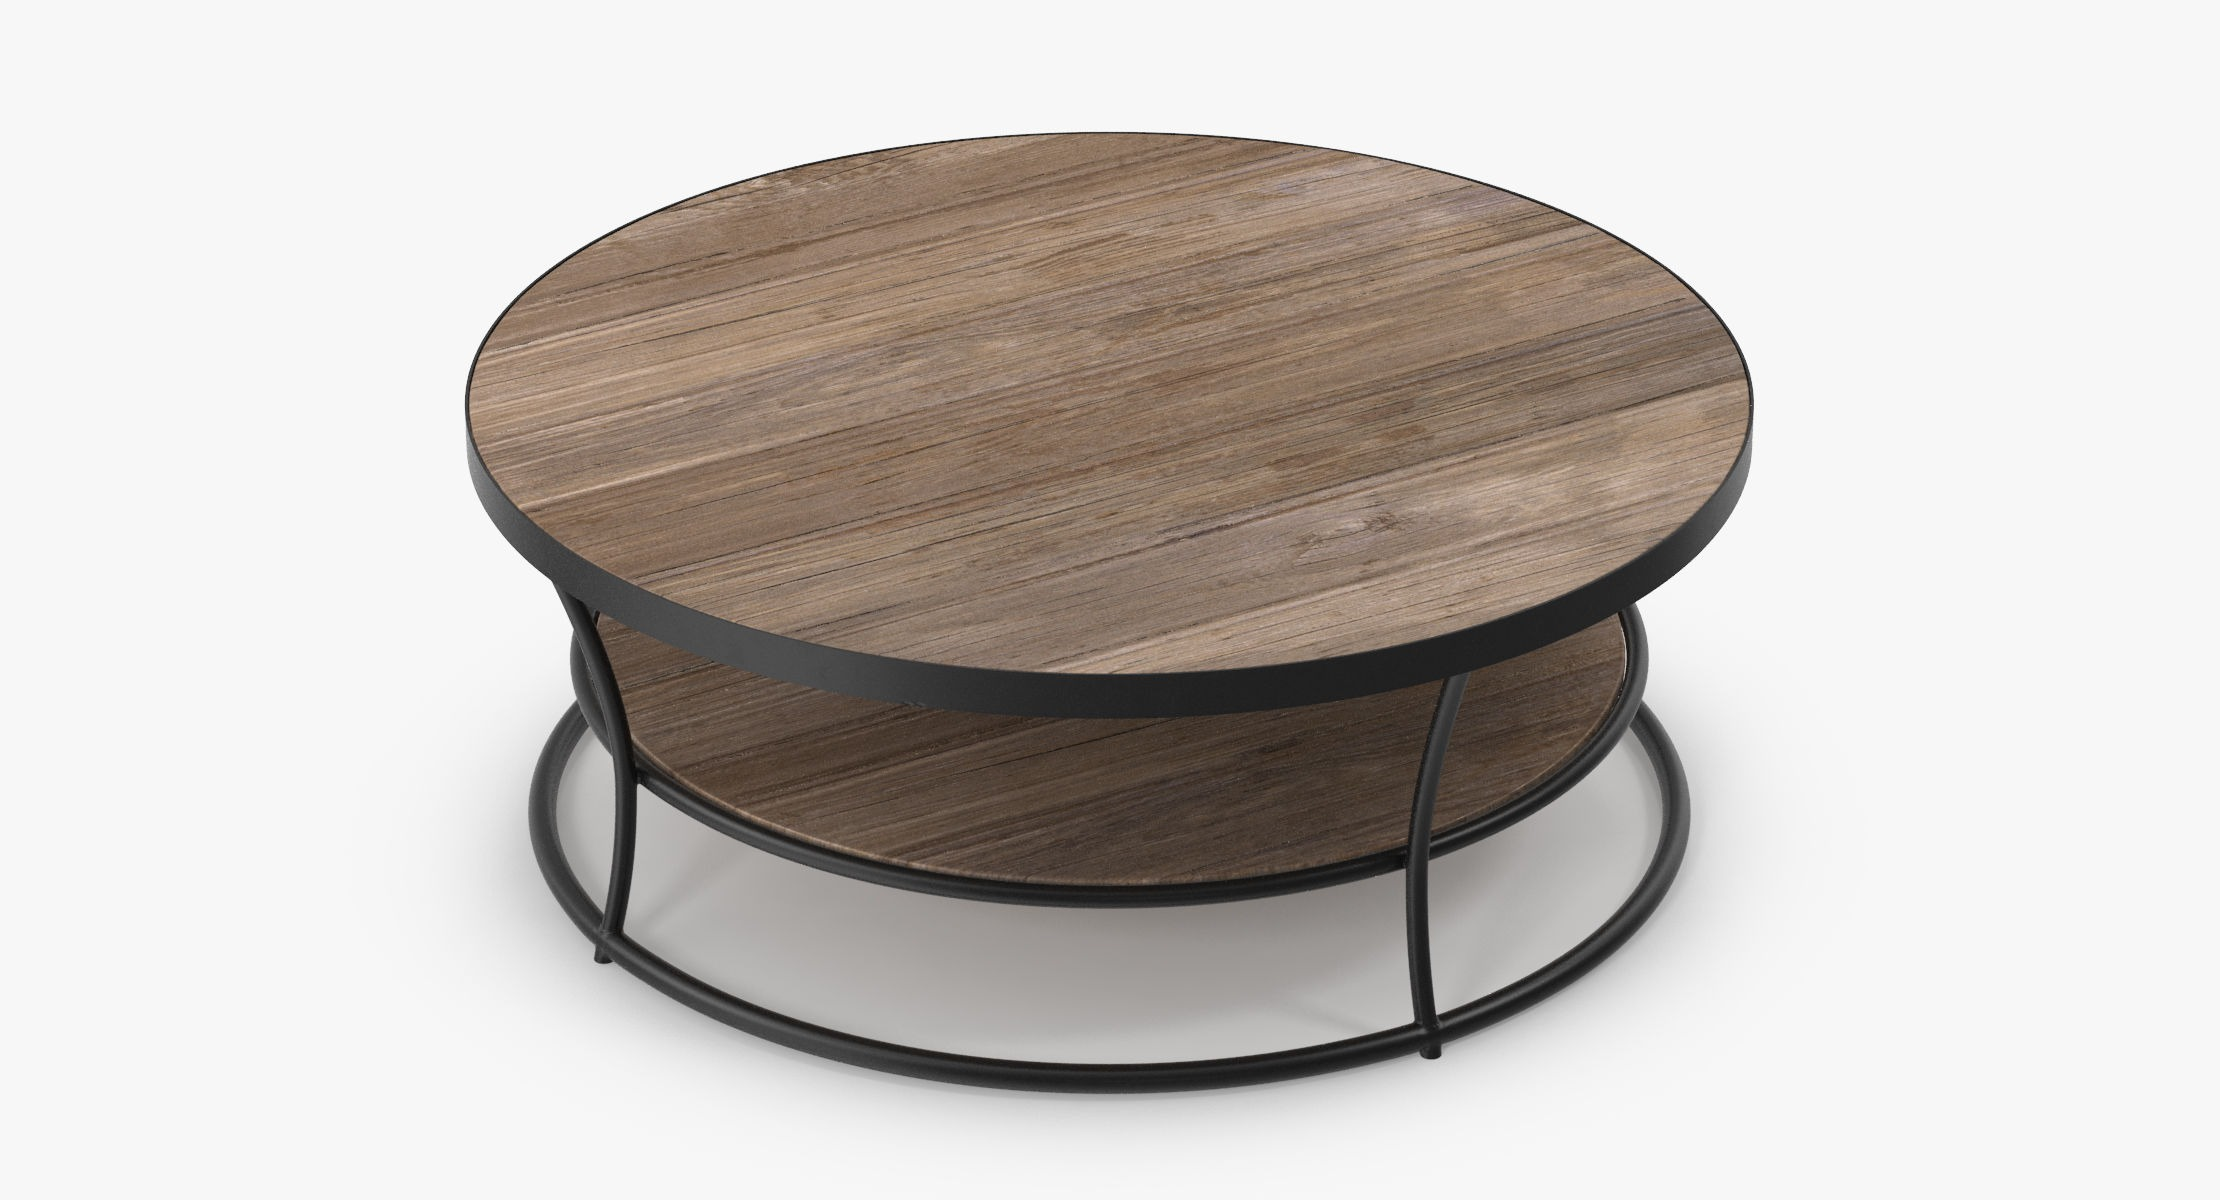 Patio Coffee Table Round 02 - reel 1